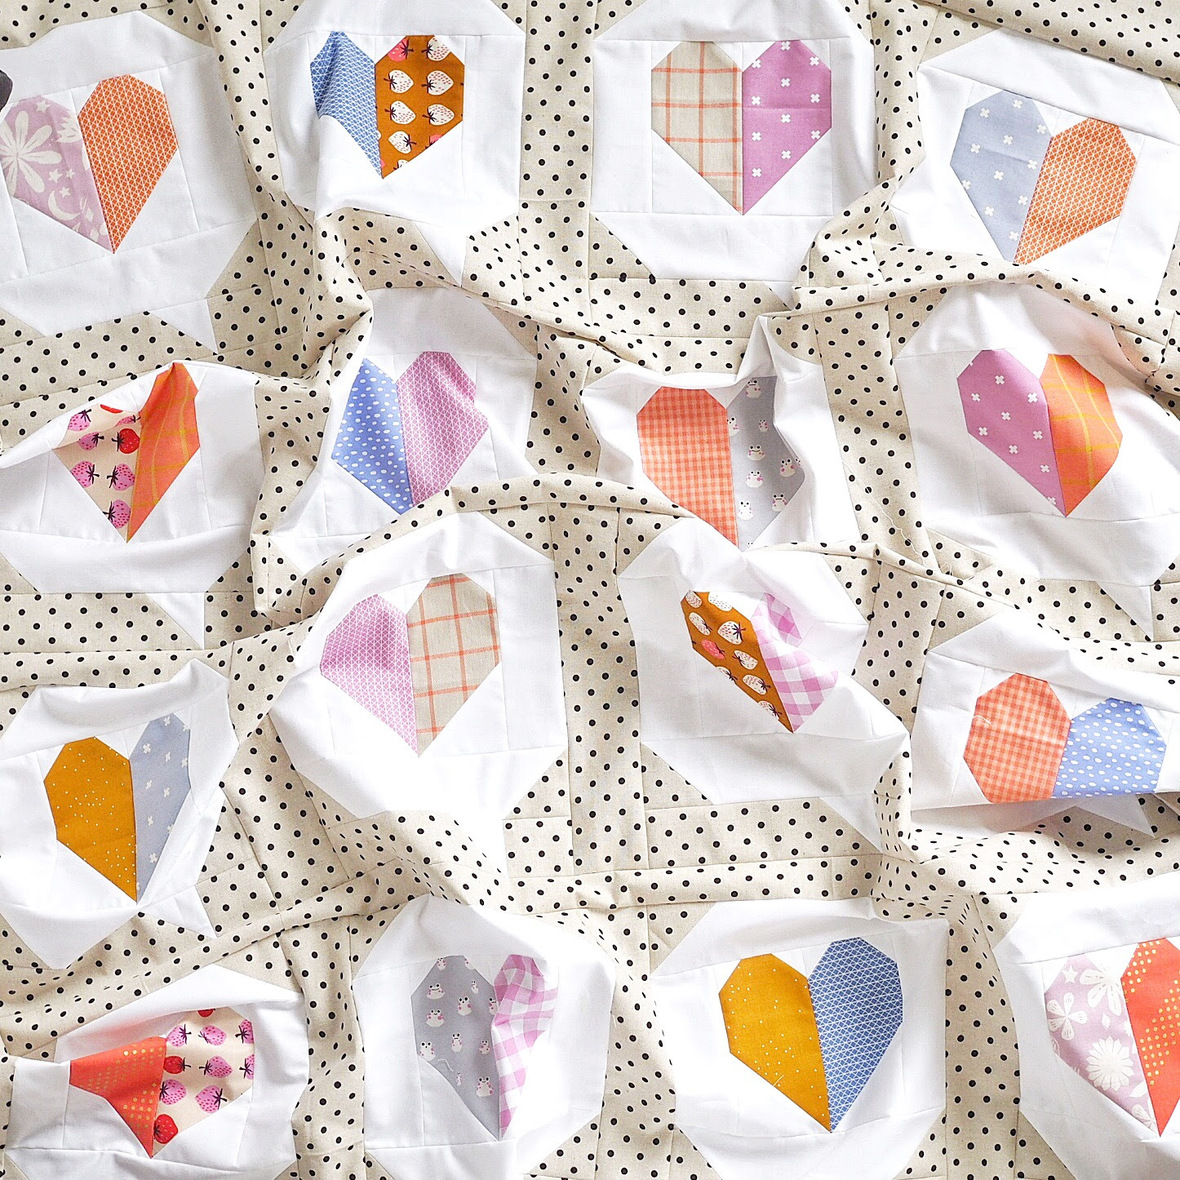 I Heart You Quilt from Then Came June